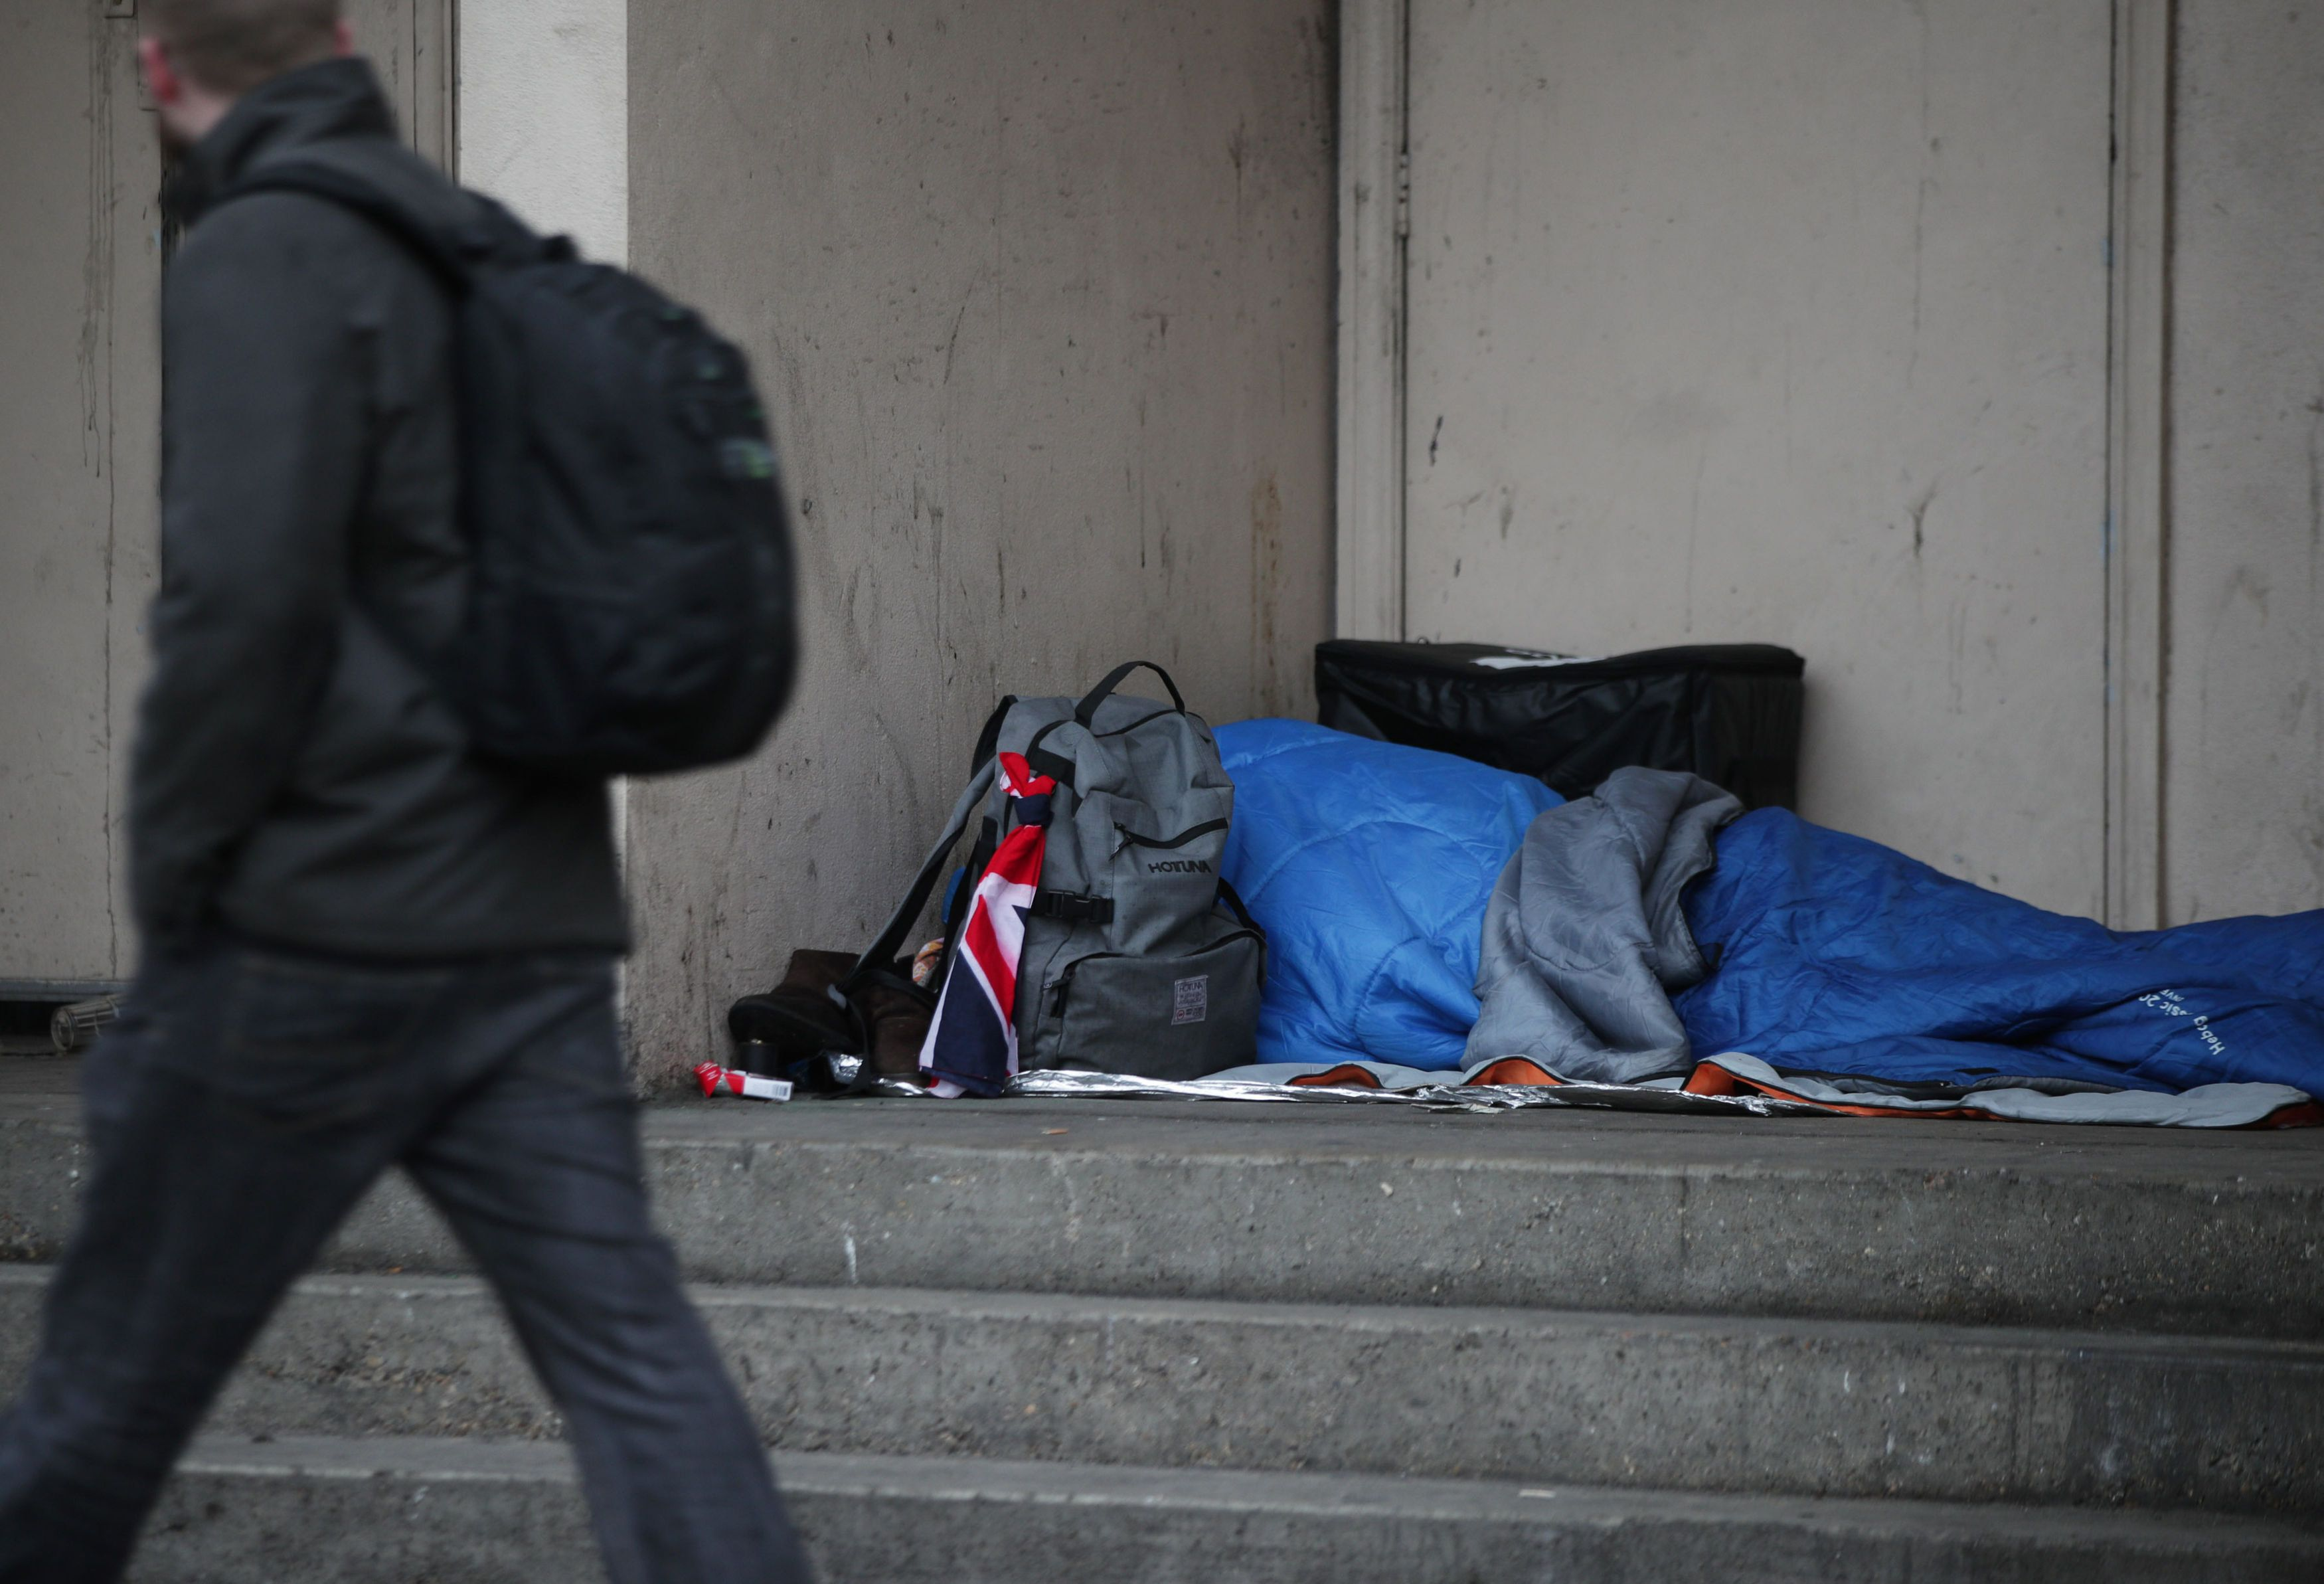 Universal Credit Welfare Reforms Contributing To Homelessness Among 16-24s, Charity